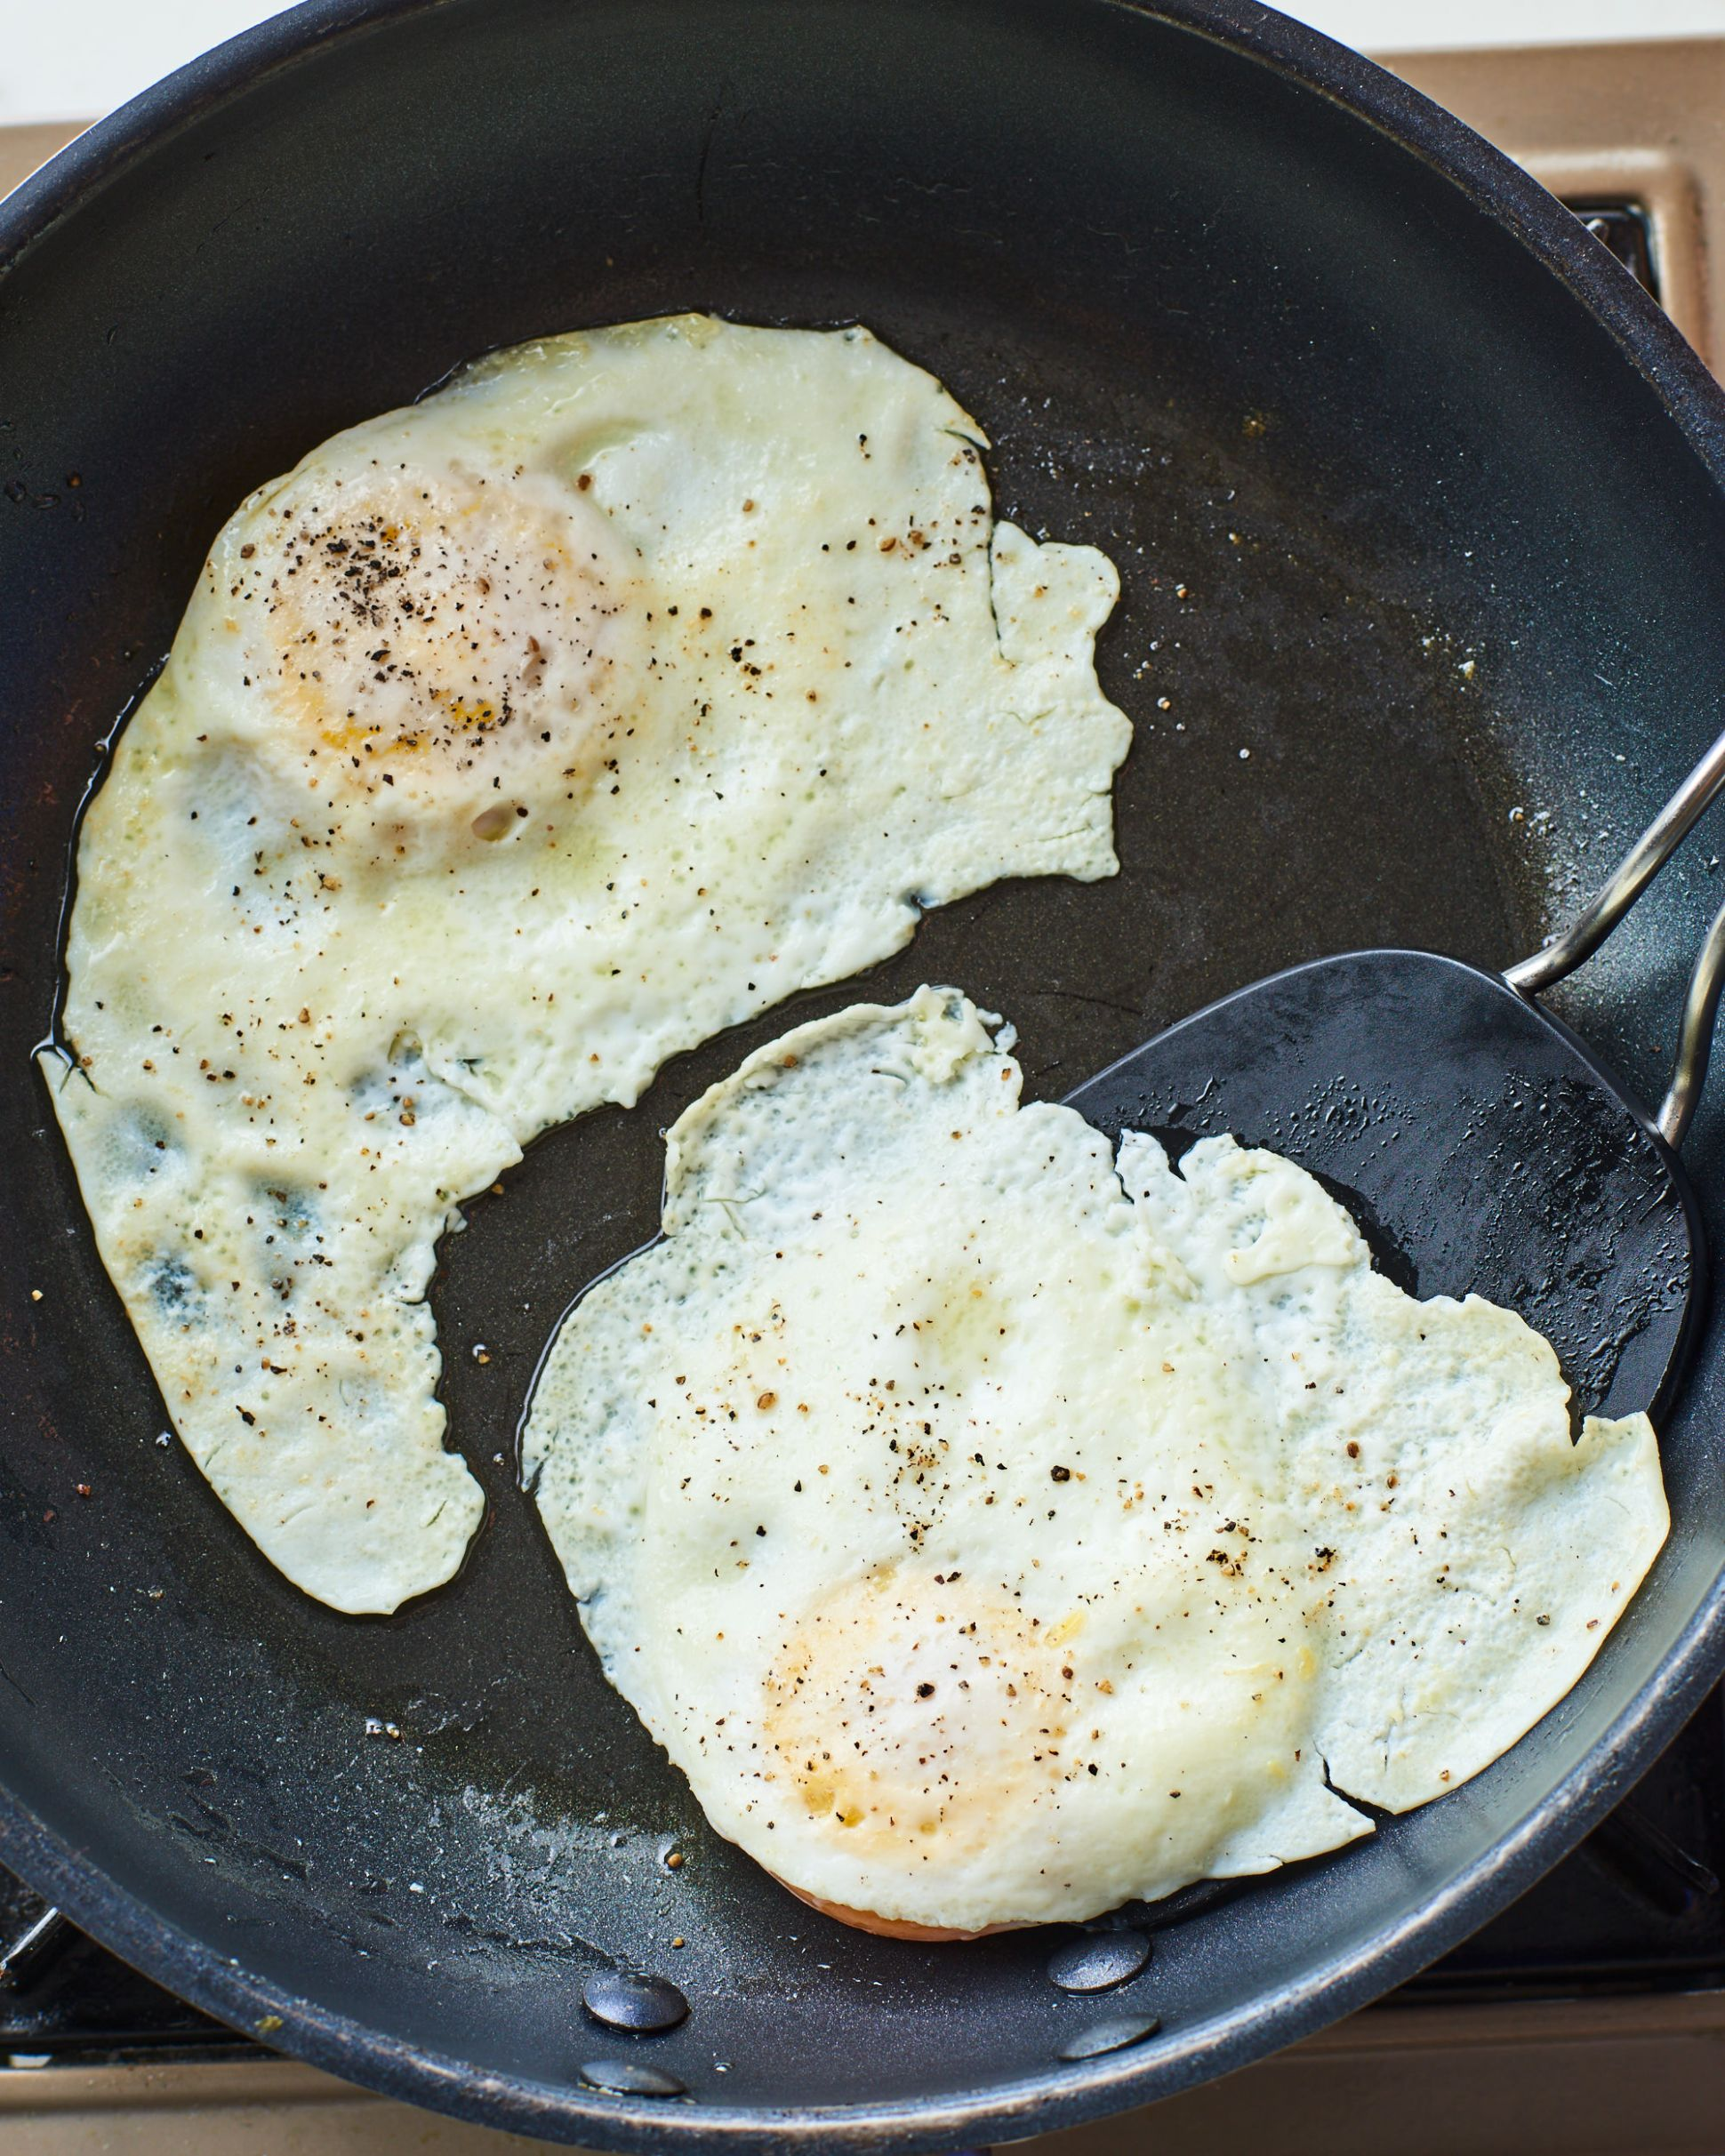 How To Make a Perfect Over-Easy Egg